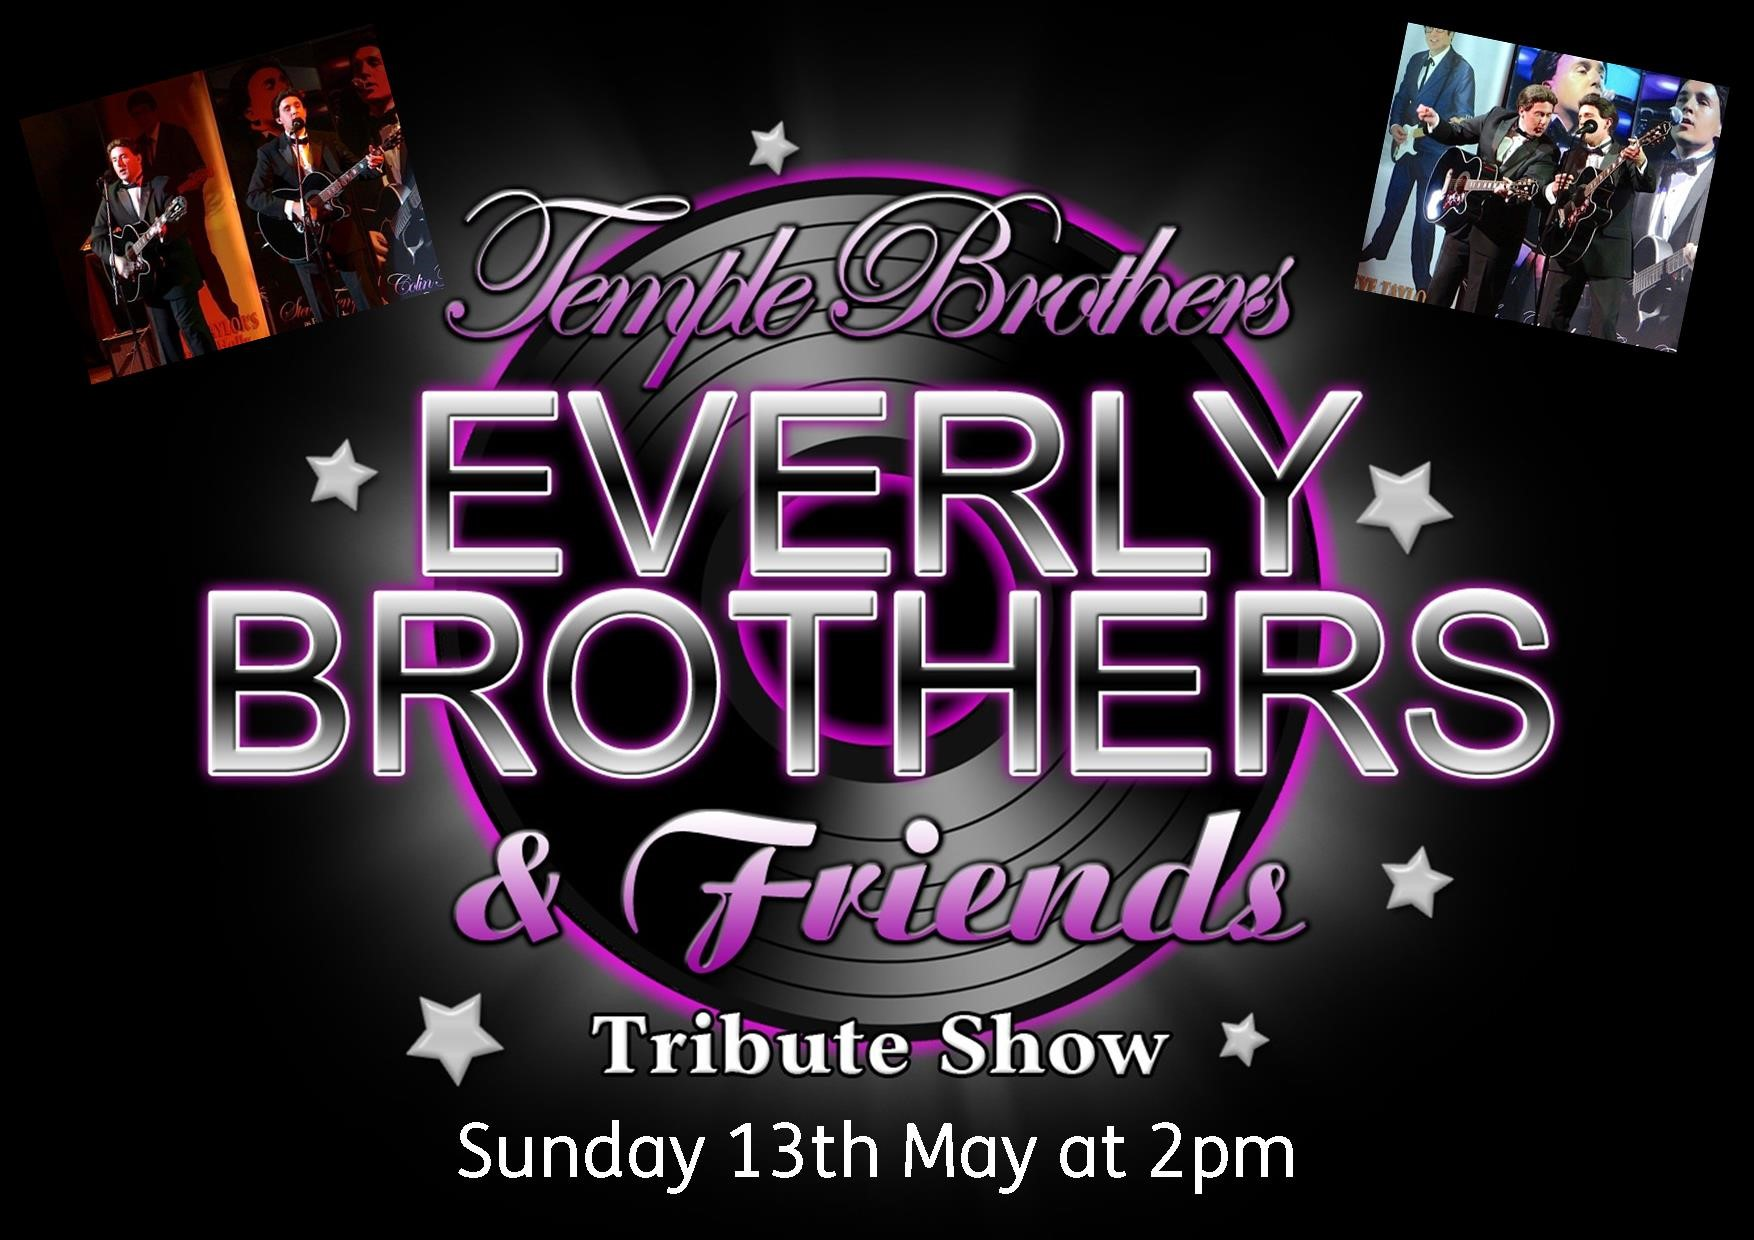 The Temple Brothers as the Everly Brothers